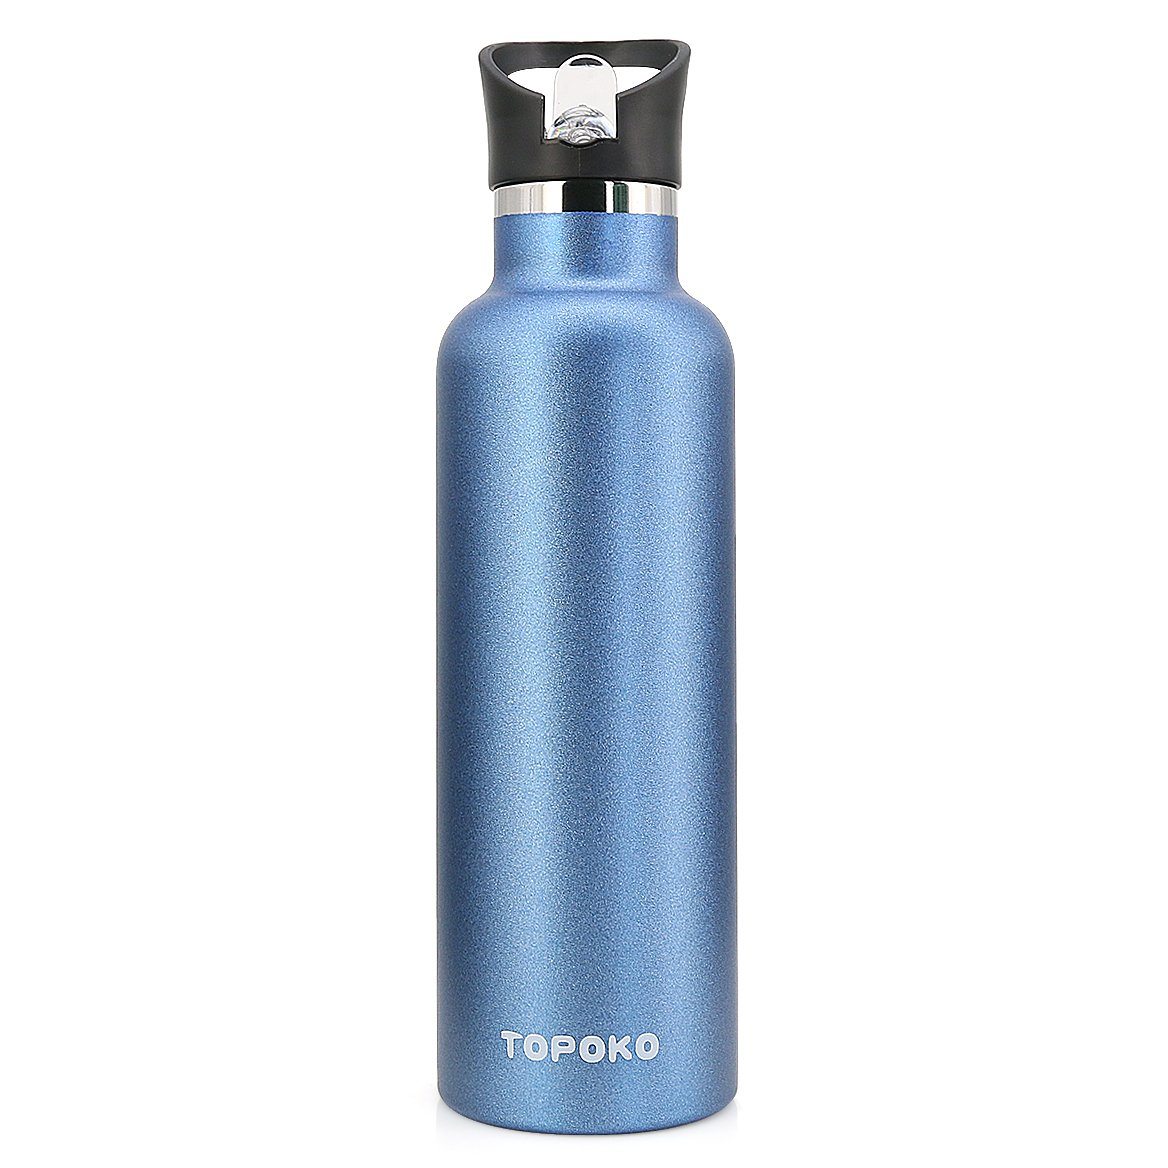 TOPOKO 25 OZ Double Wall Water Bottle Straw Lid with Handle, Vacuum Insulated Stainless Steel Bottle, Sweat Proof, Leak Proof Thermos Standard Mouth, Vacuum Seal Cap Mug (Straw Lid Blue)